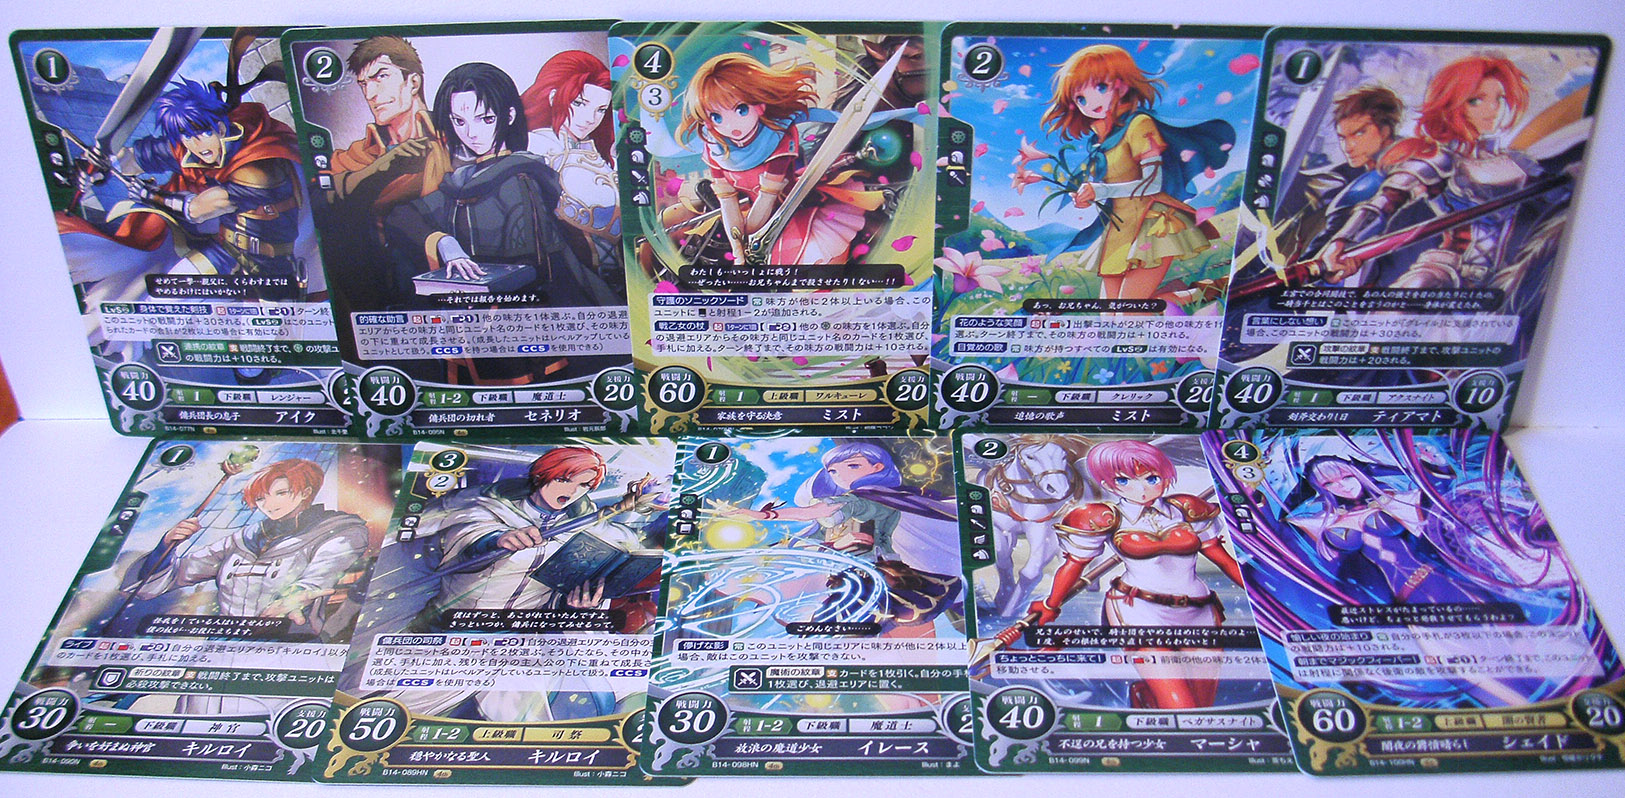 Path of Radiance Fire Emblem Cipher TCG cards (series 14) sold by shinyv